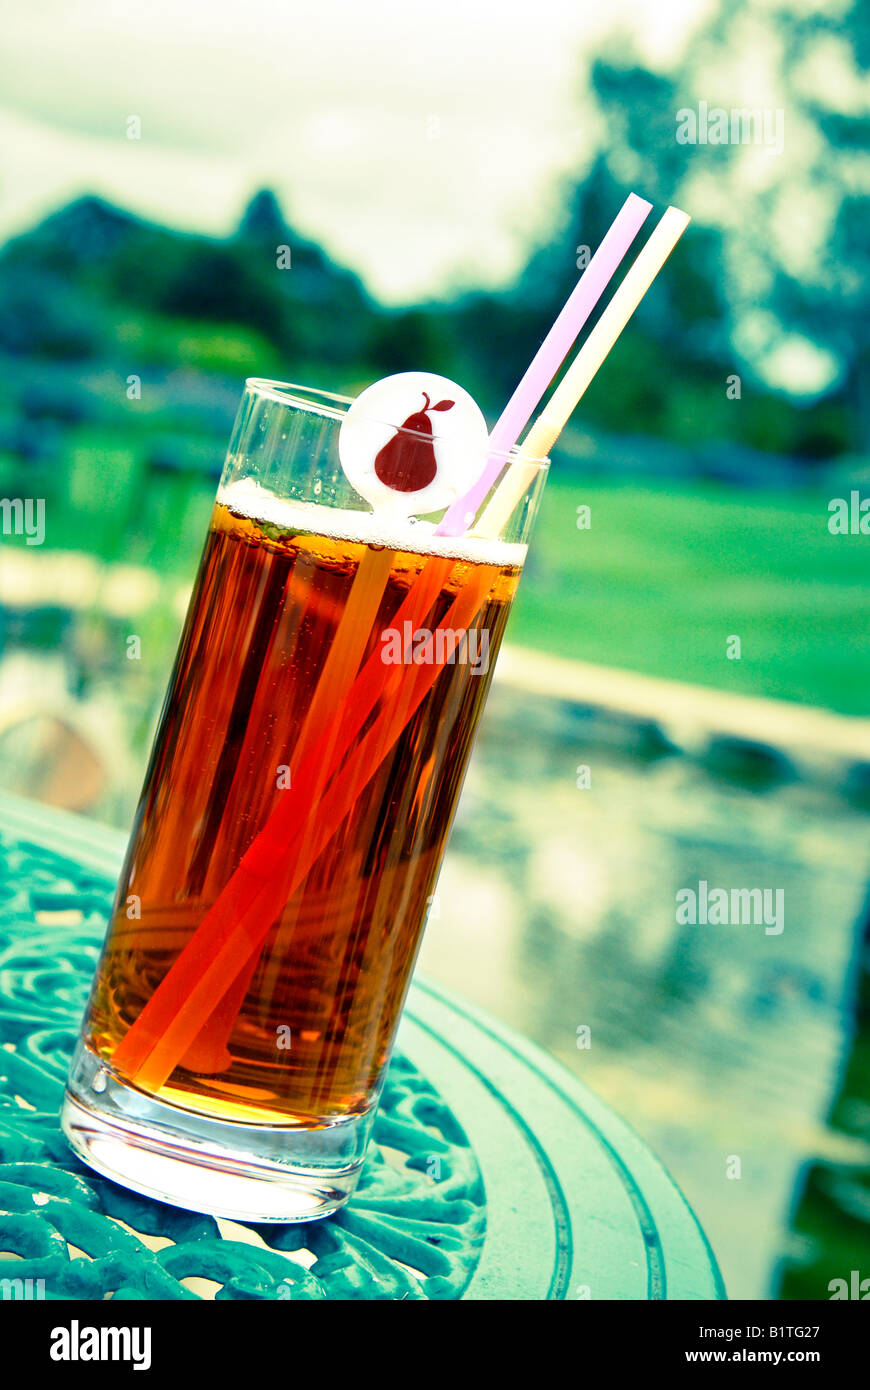 A glass of Pimms and lemonade on a table at a wedding reception.  The background is cross-processed - Stock Image